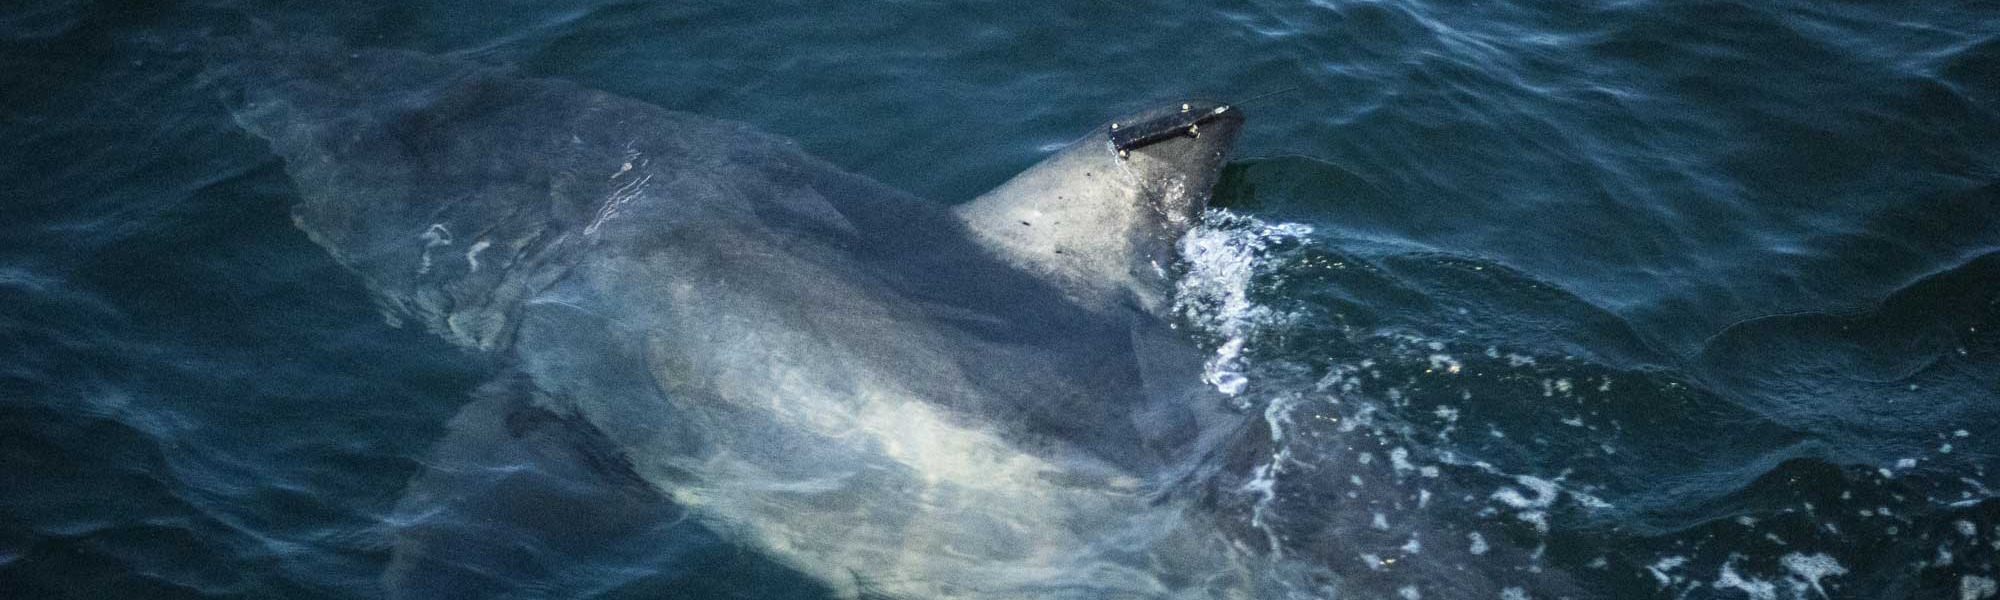 OCEARCH Adds Satellite Tag to Shark Already Equipped With an Acoustic Transmitter